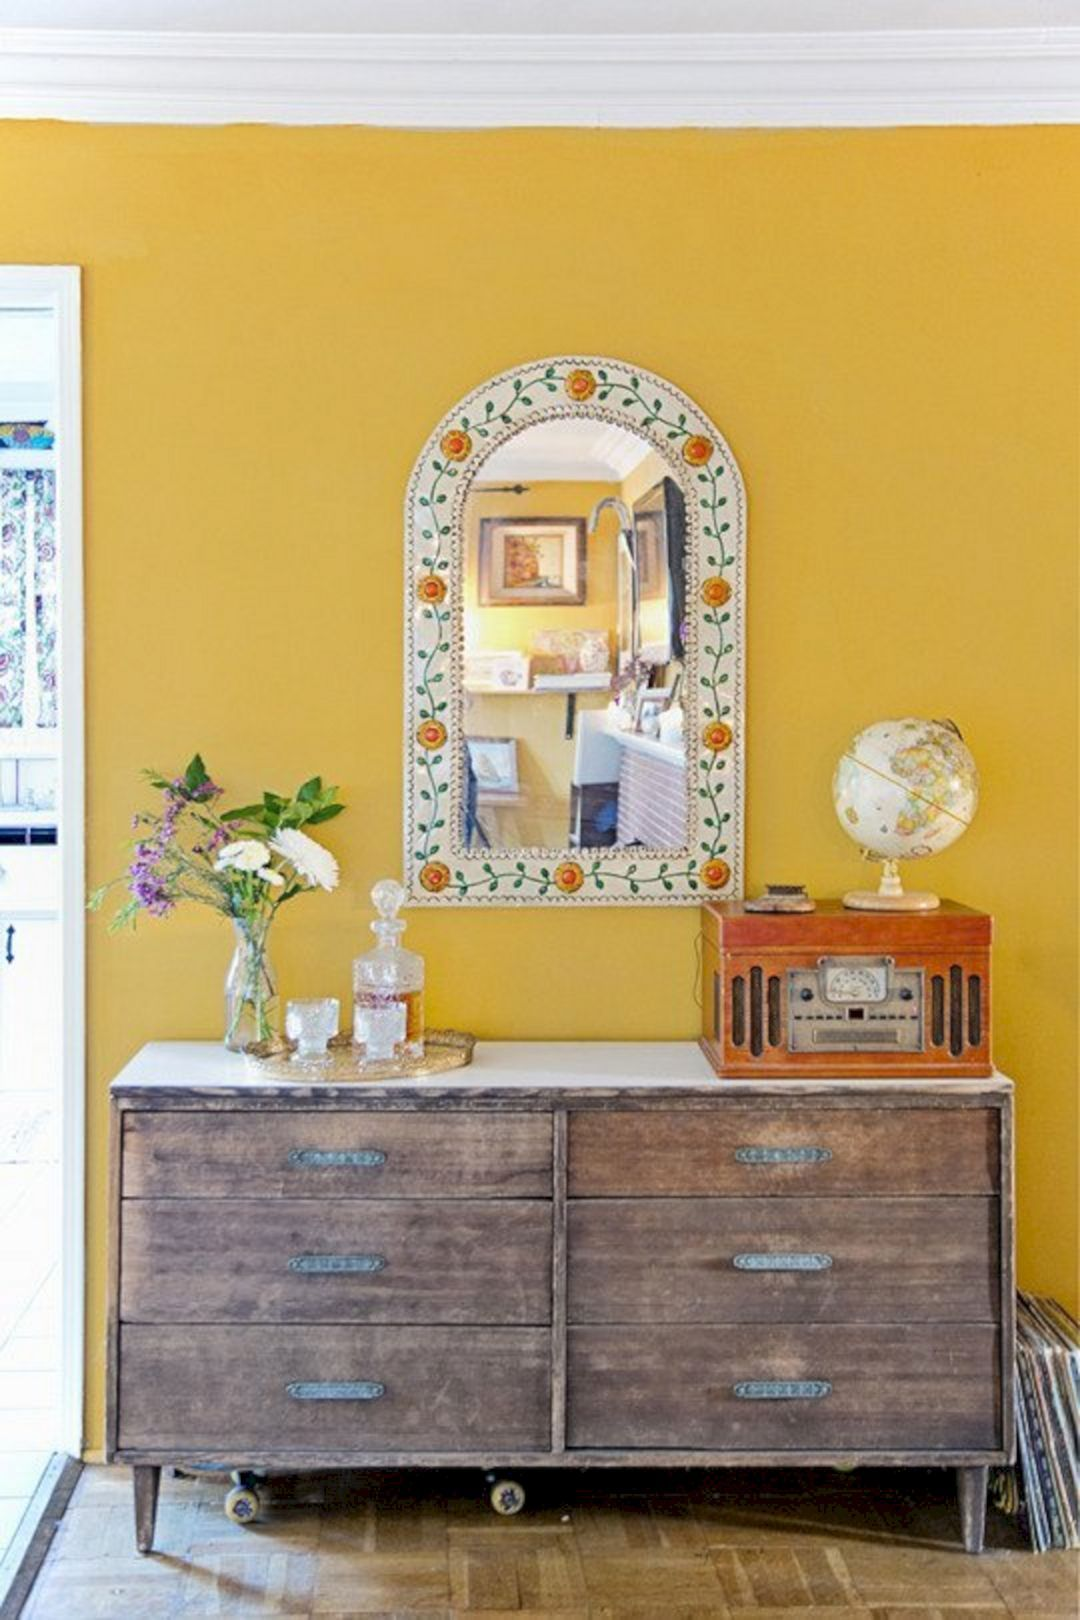 45+ Incredible Yellow Aesthetic Bedroom Decorating Ideas in 2018 ...